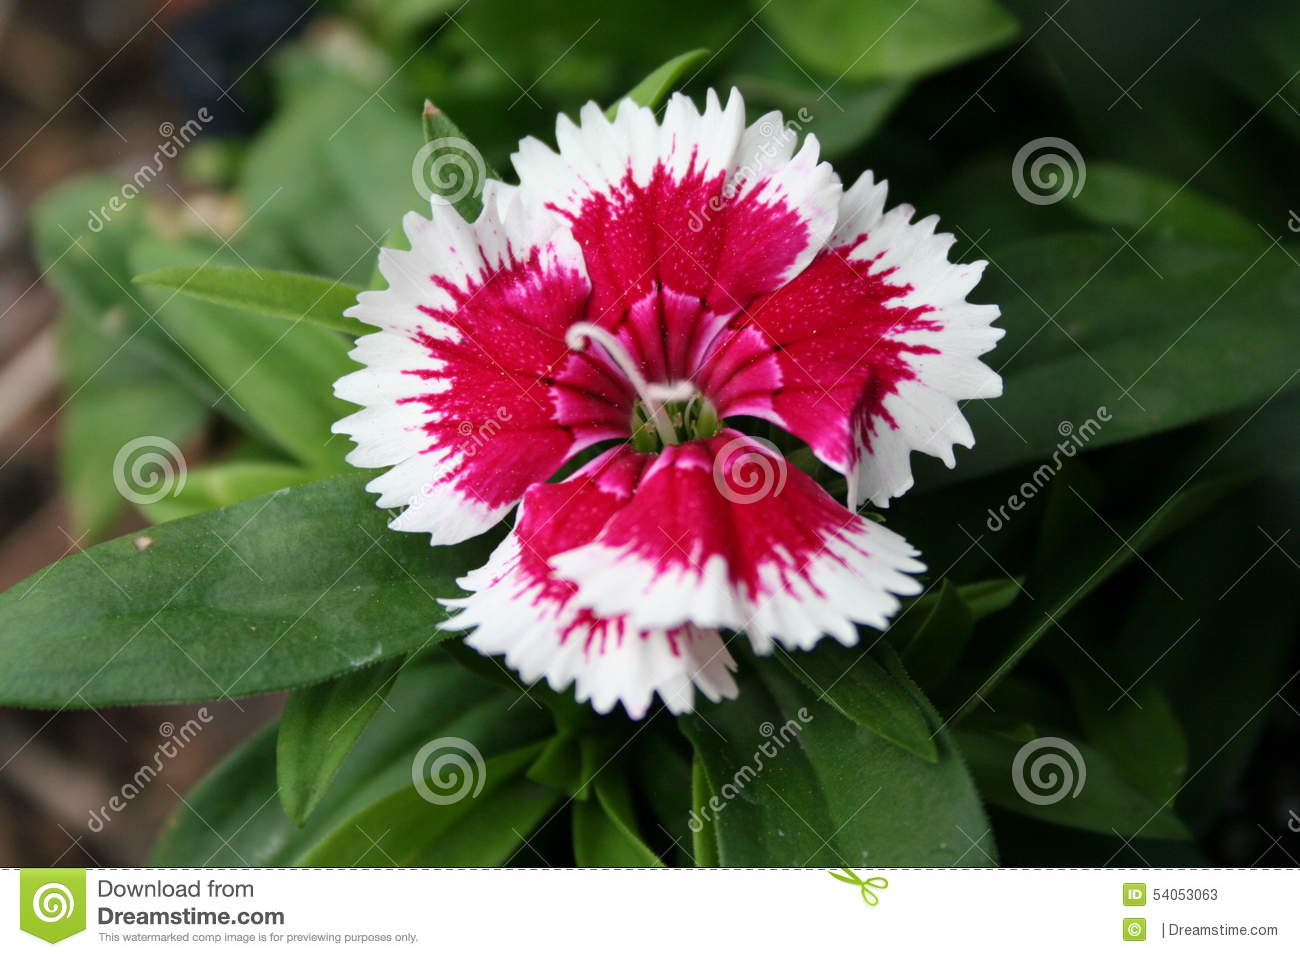 Red and white perennial dianthus stock image image of branch buds red and white perennial dianthus mightylinksfo